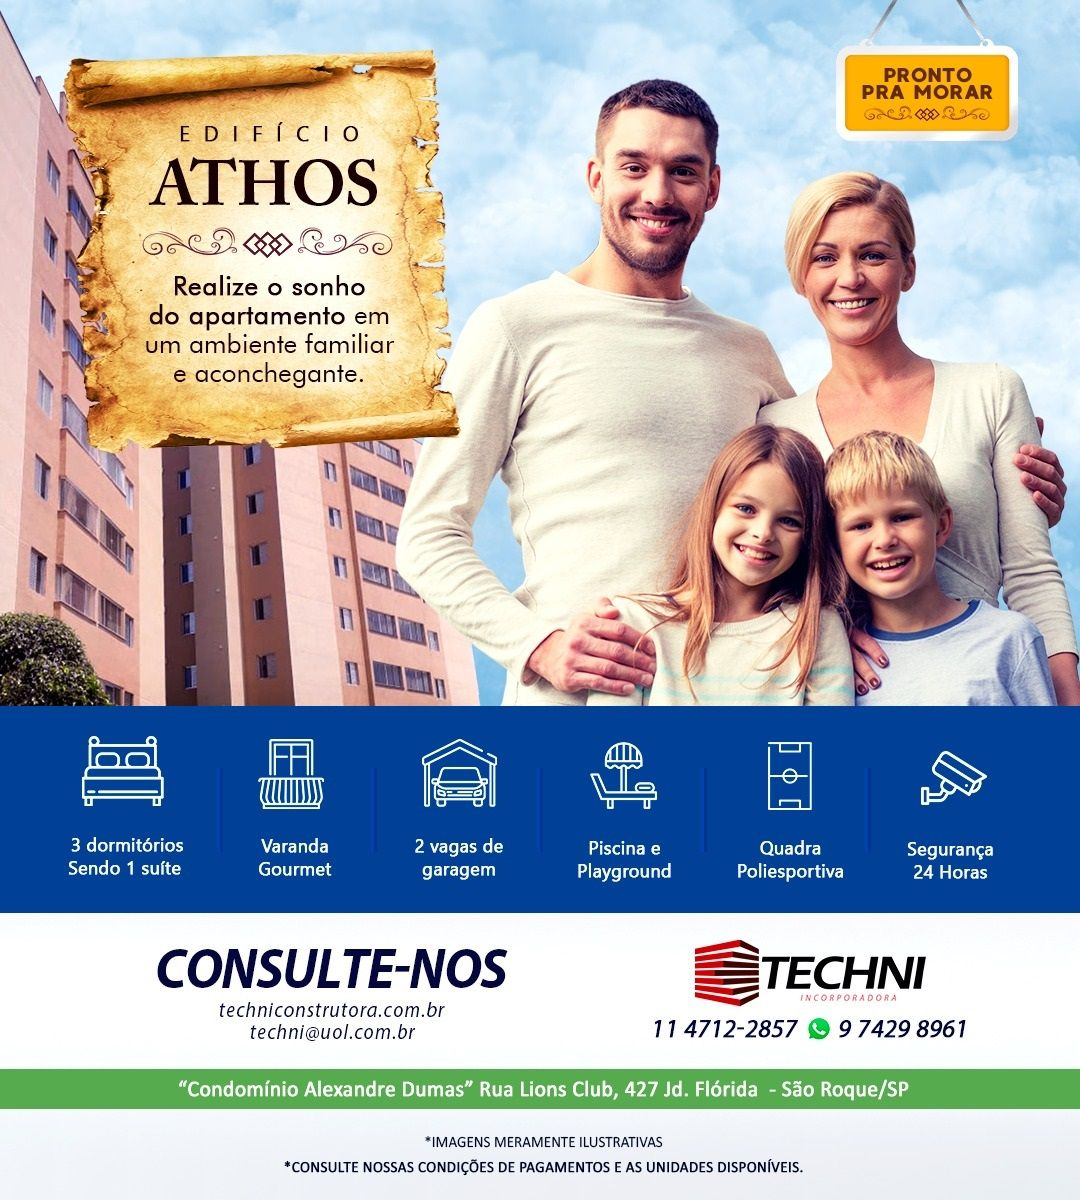 Techni incorporadora